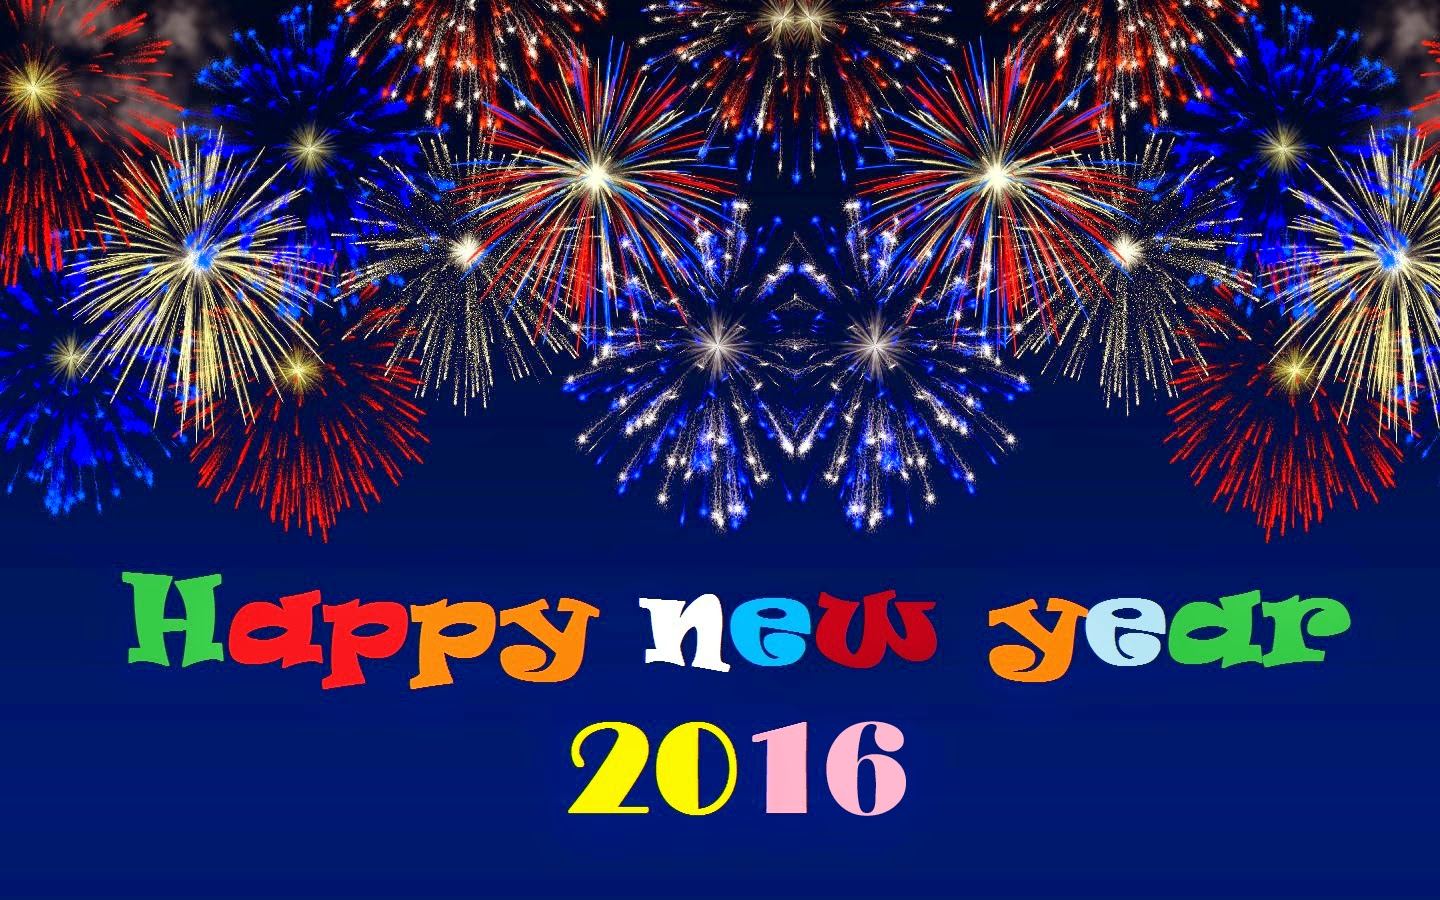 new year images 2016